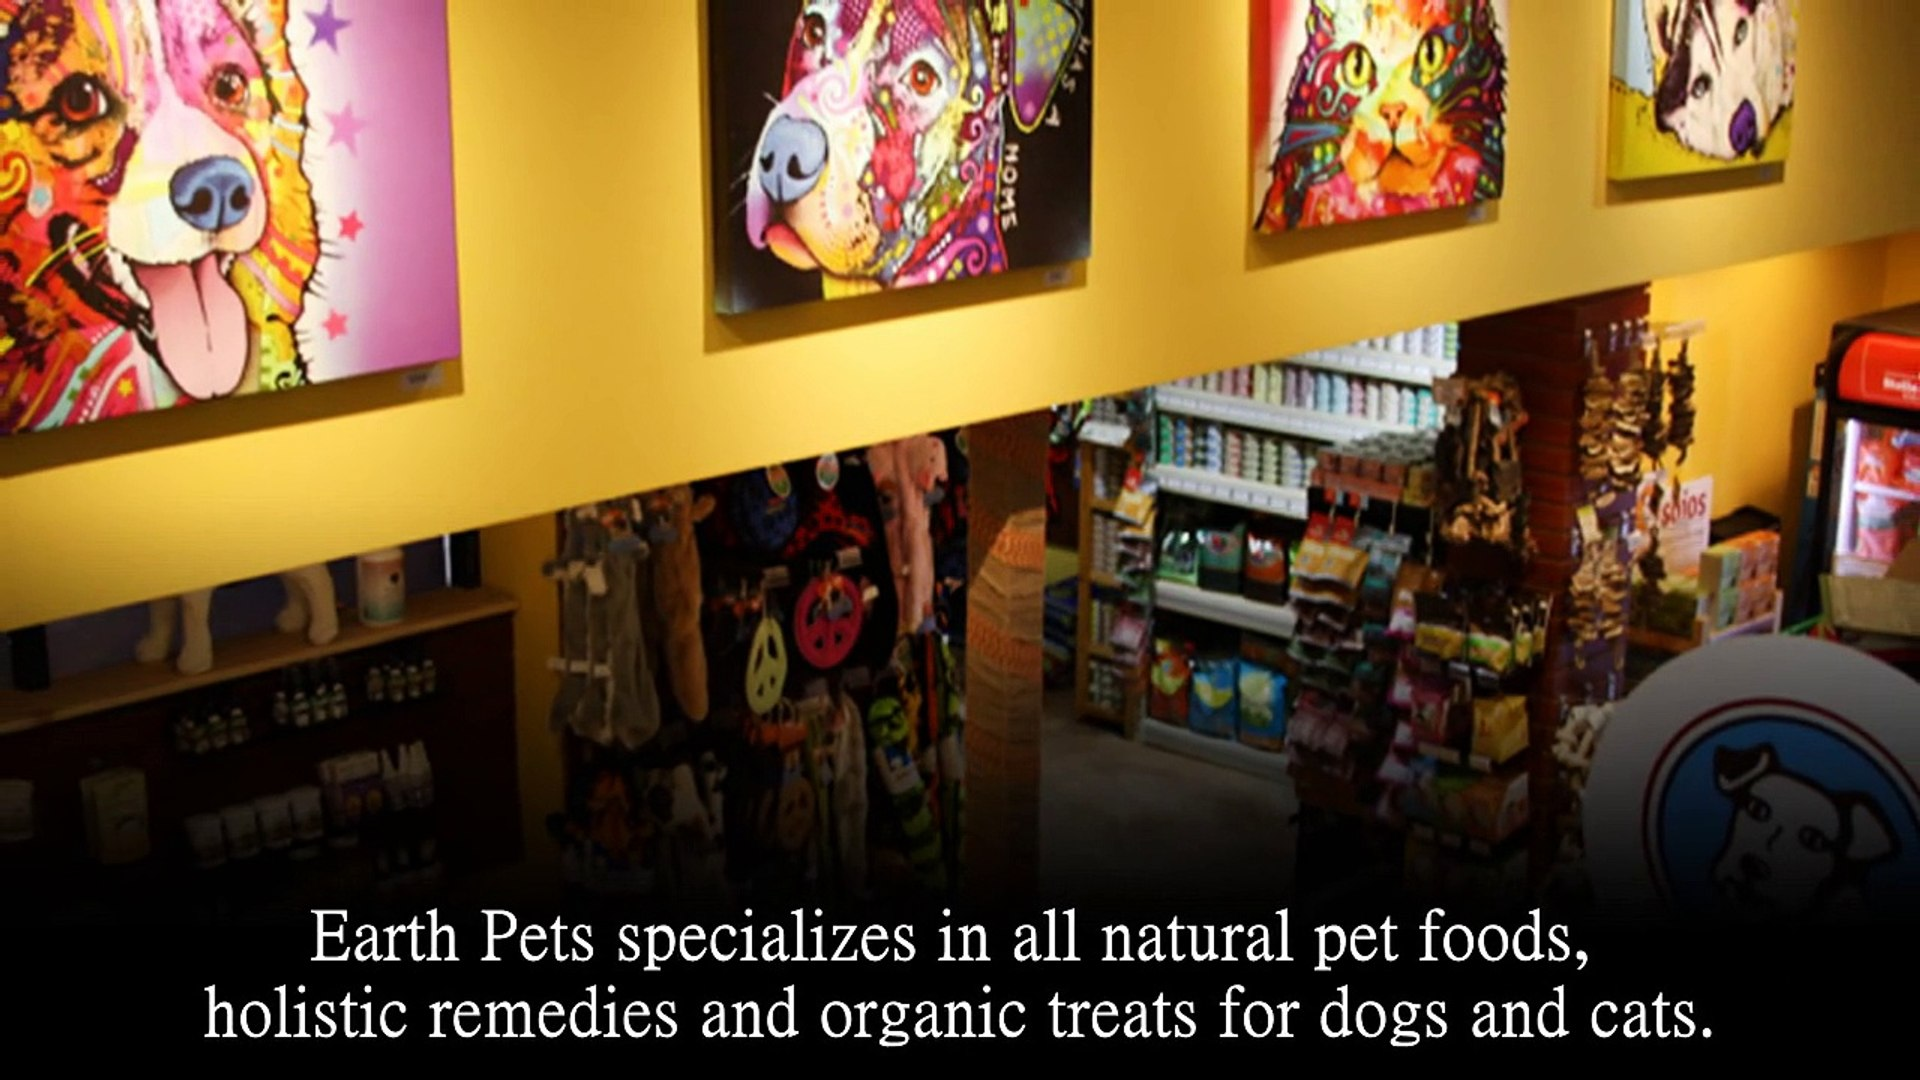 Find Natural Pet Food for Pets at Pet Supermarket - Earth Pets